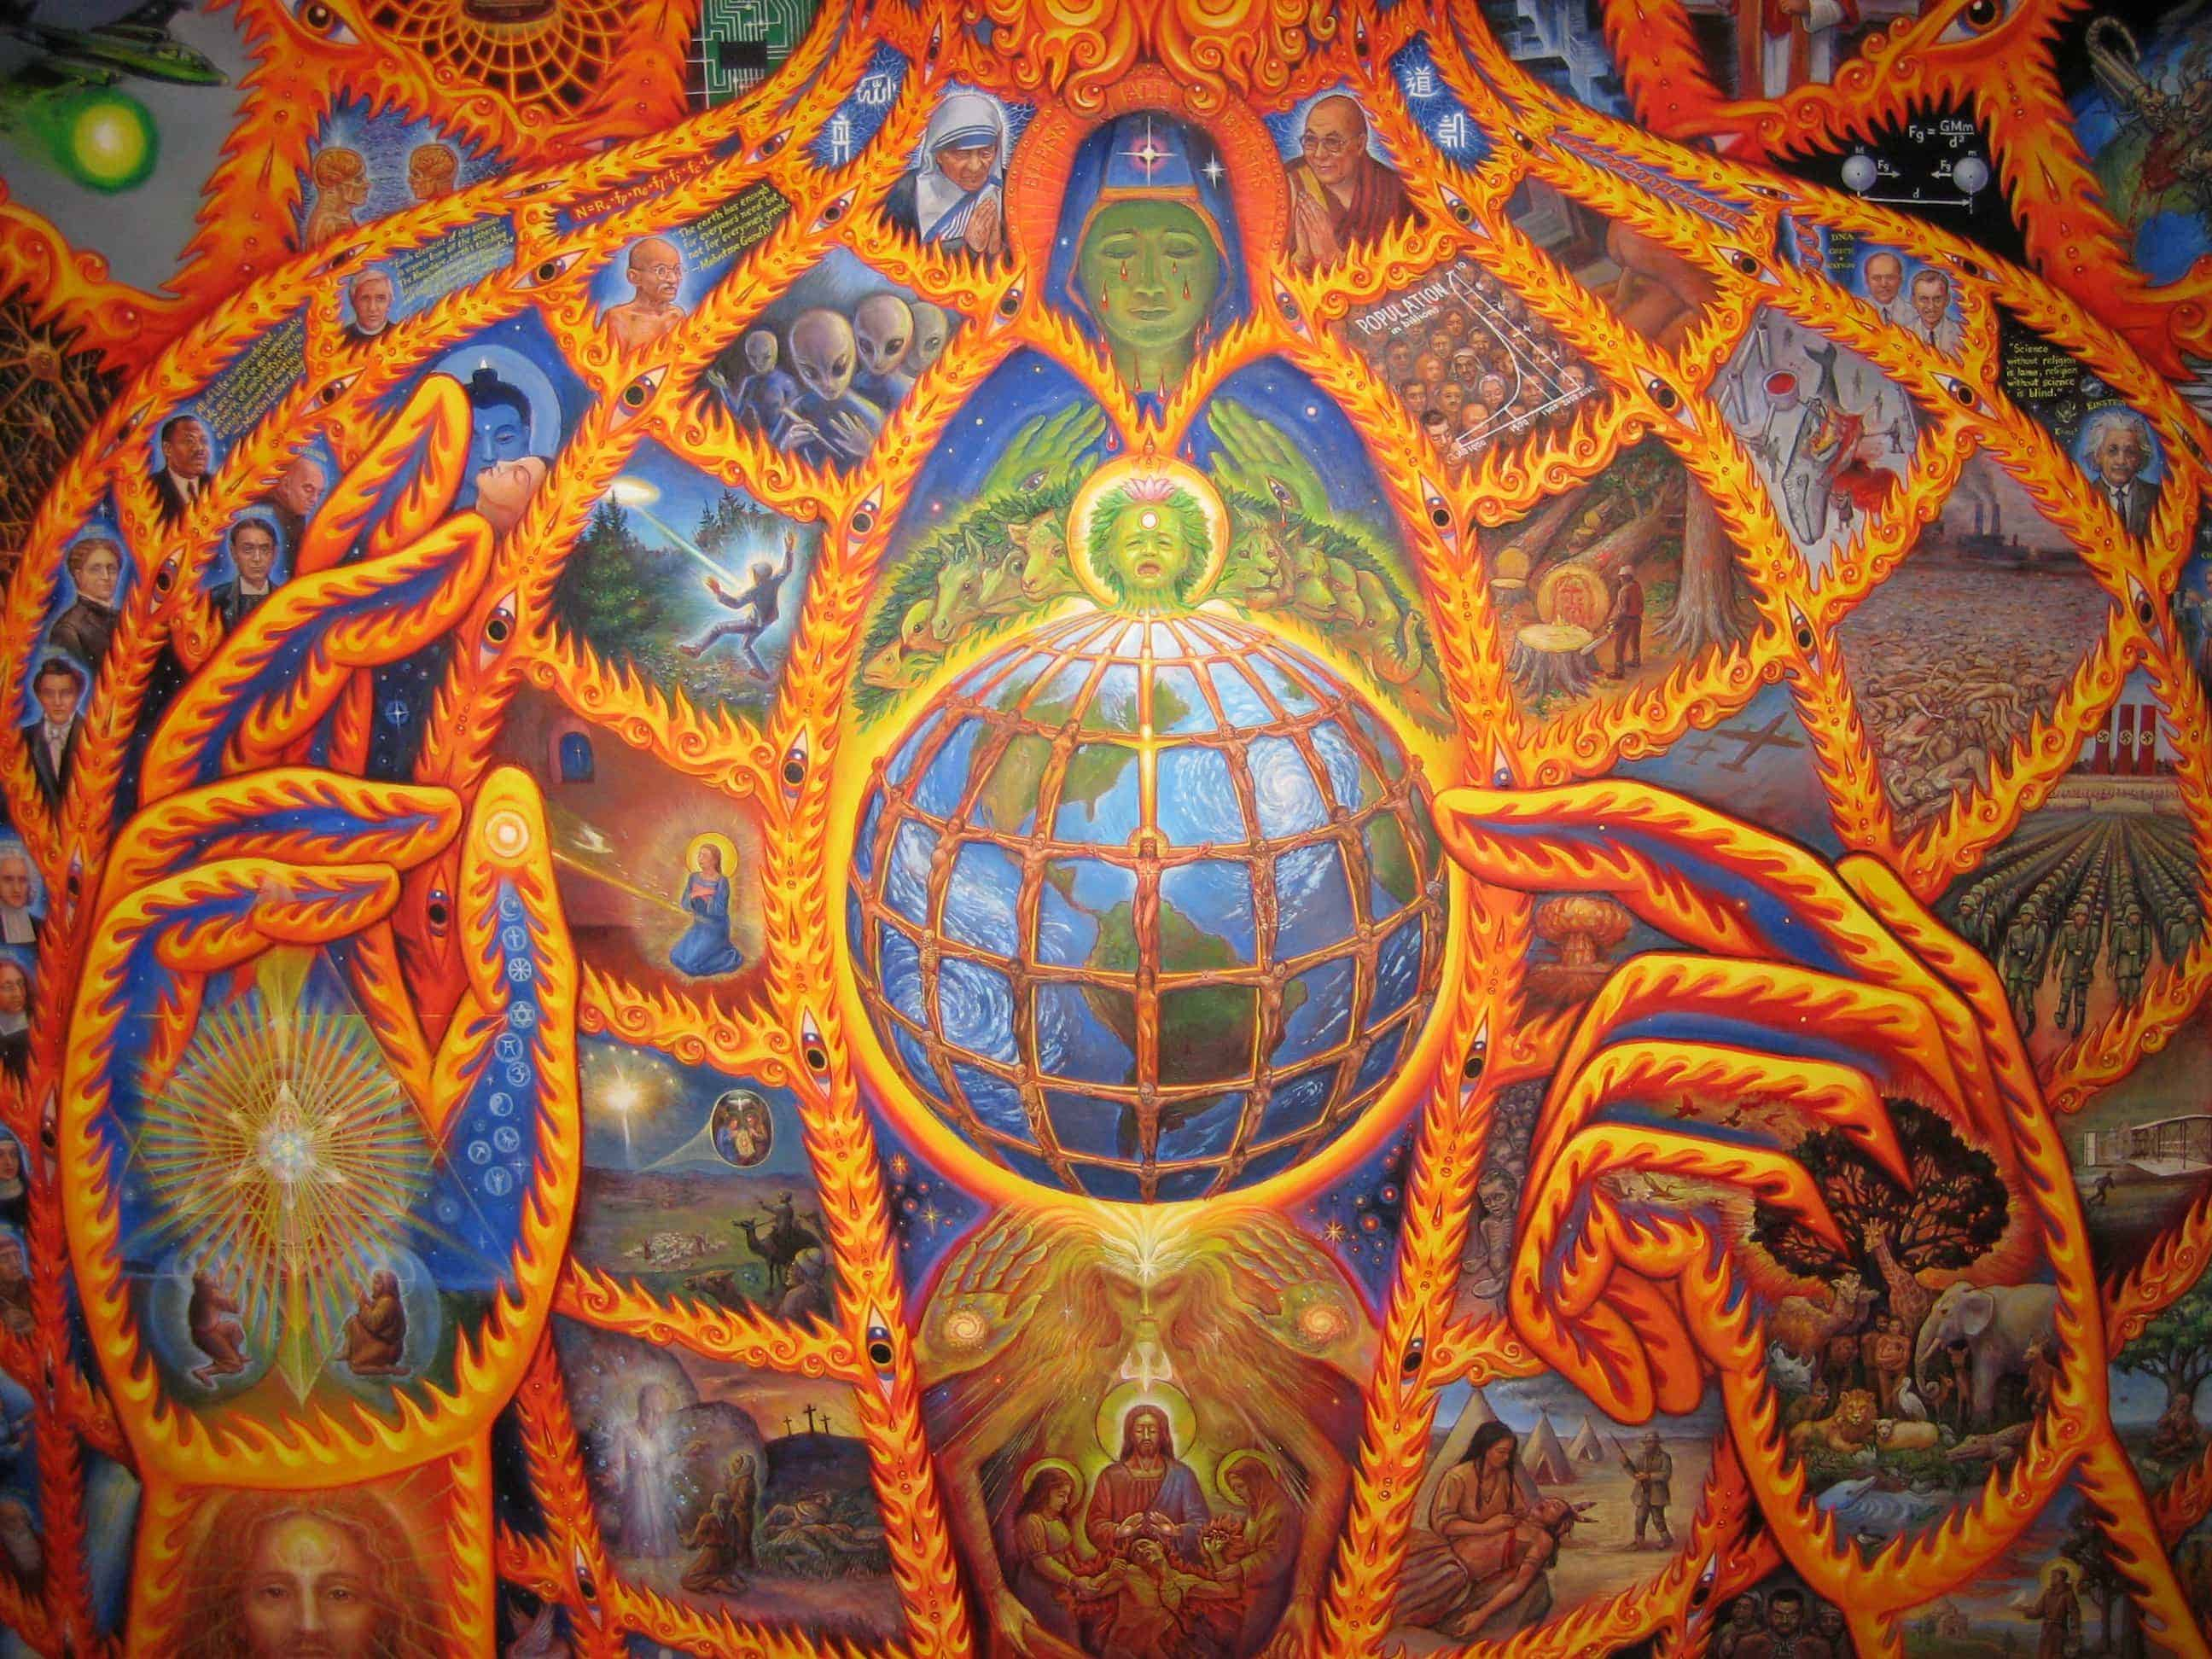 Psychedelic Spirit Paintings Alex Grey Art Gallery: The 9 Personalities Which Are Changing The World